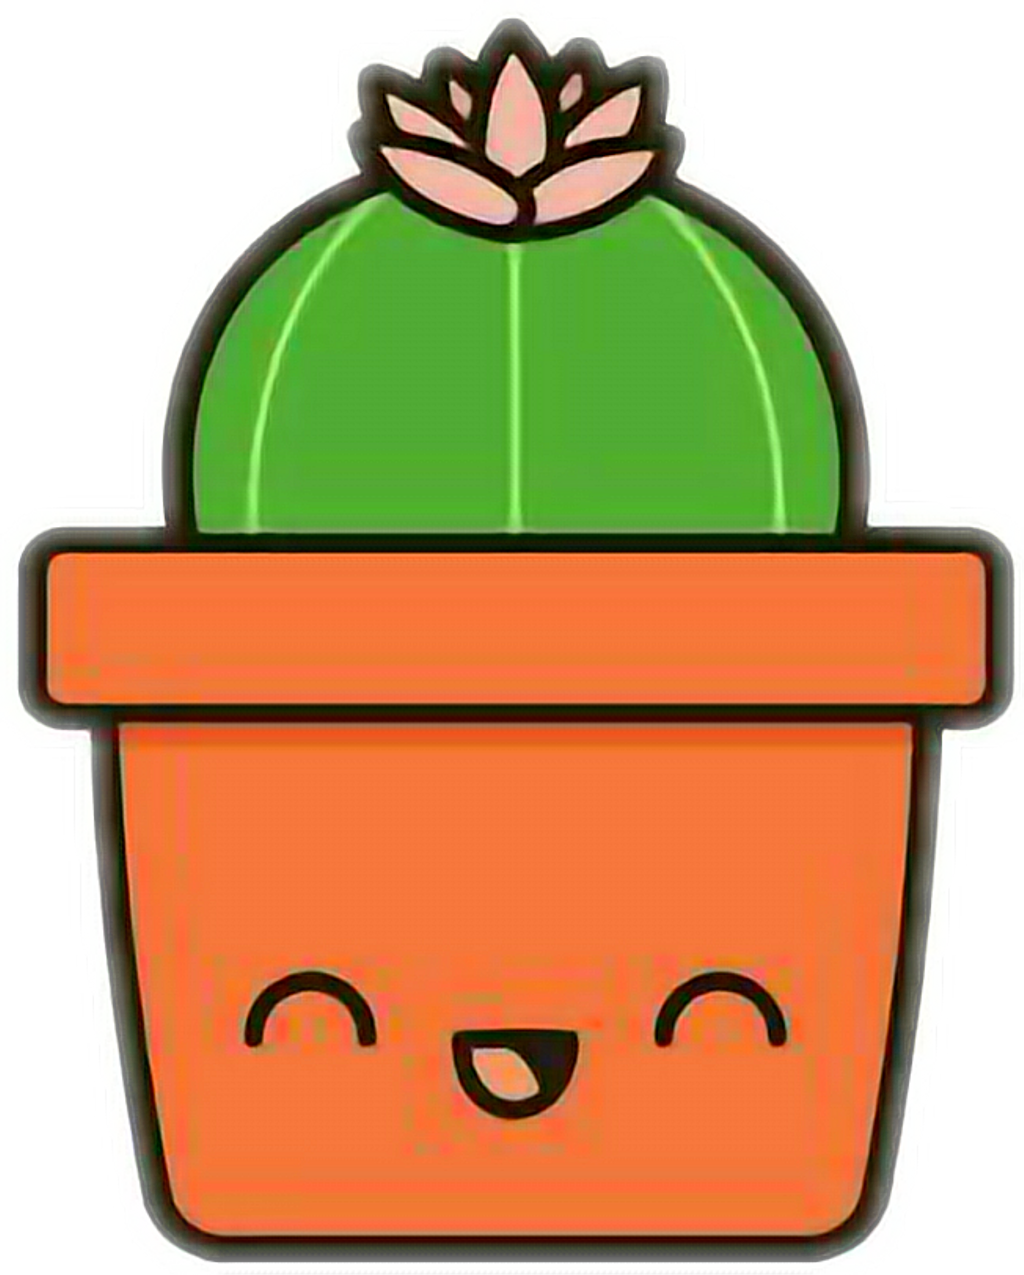 Cactus clipart kawaii. Sticker by infinite space